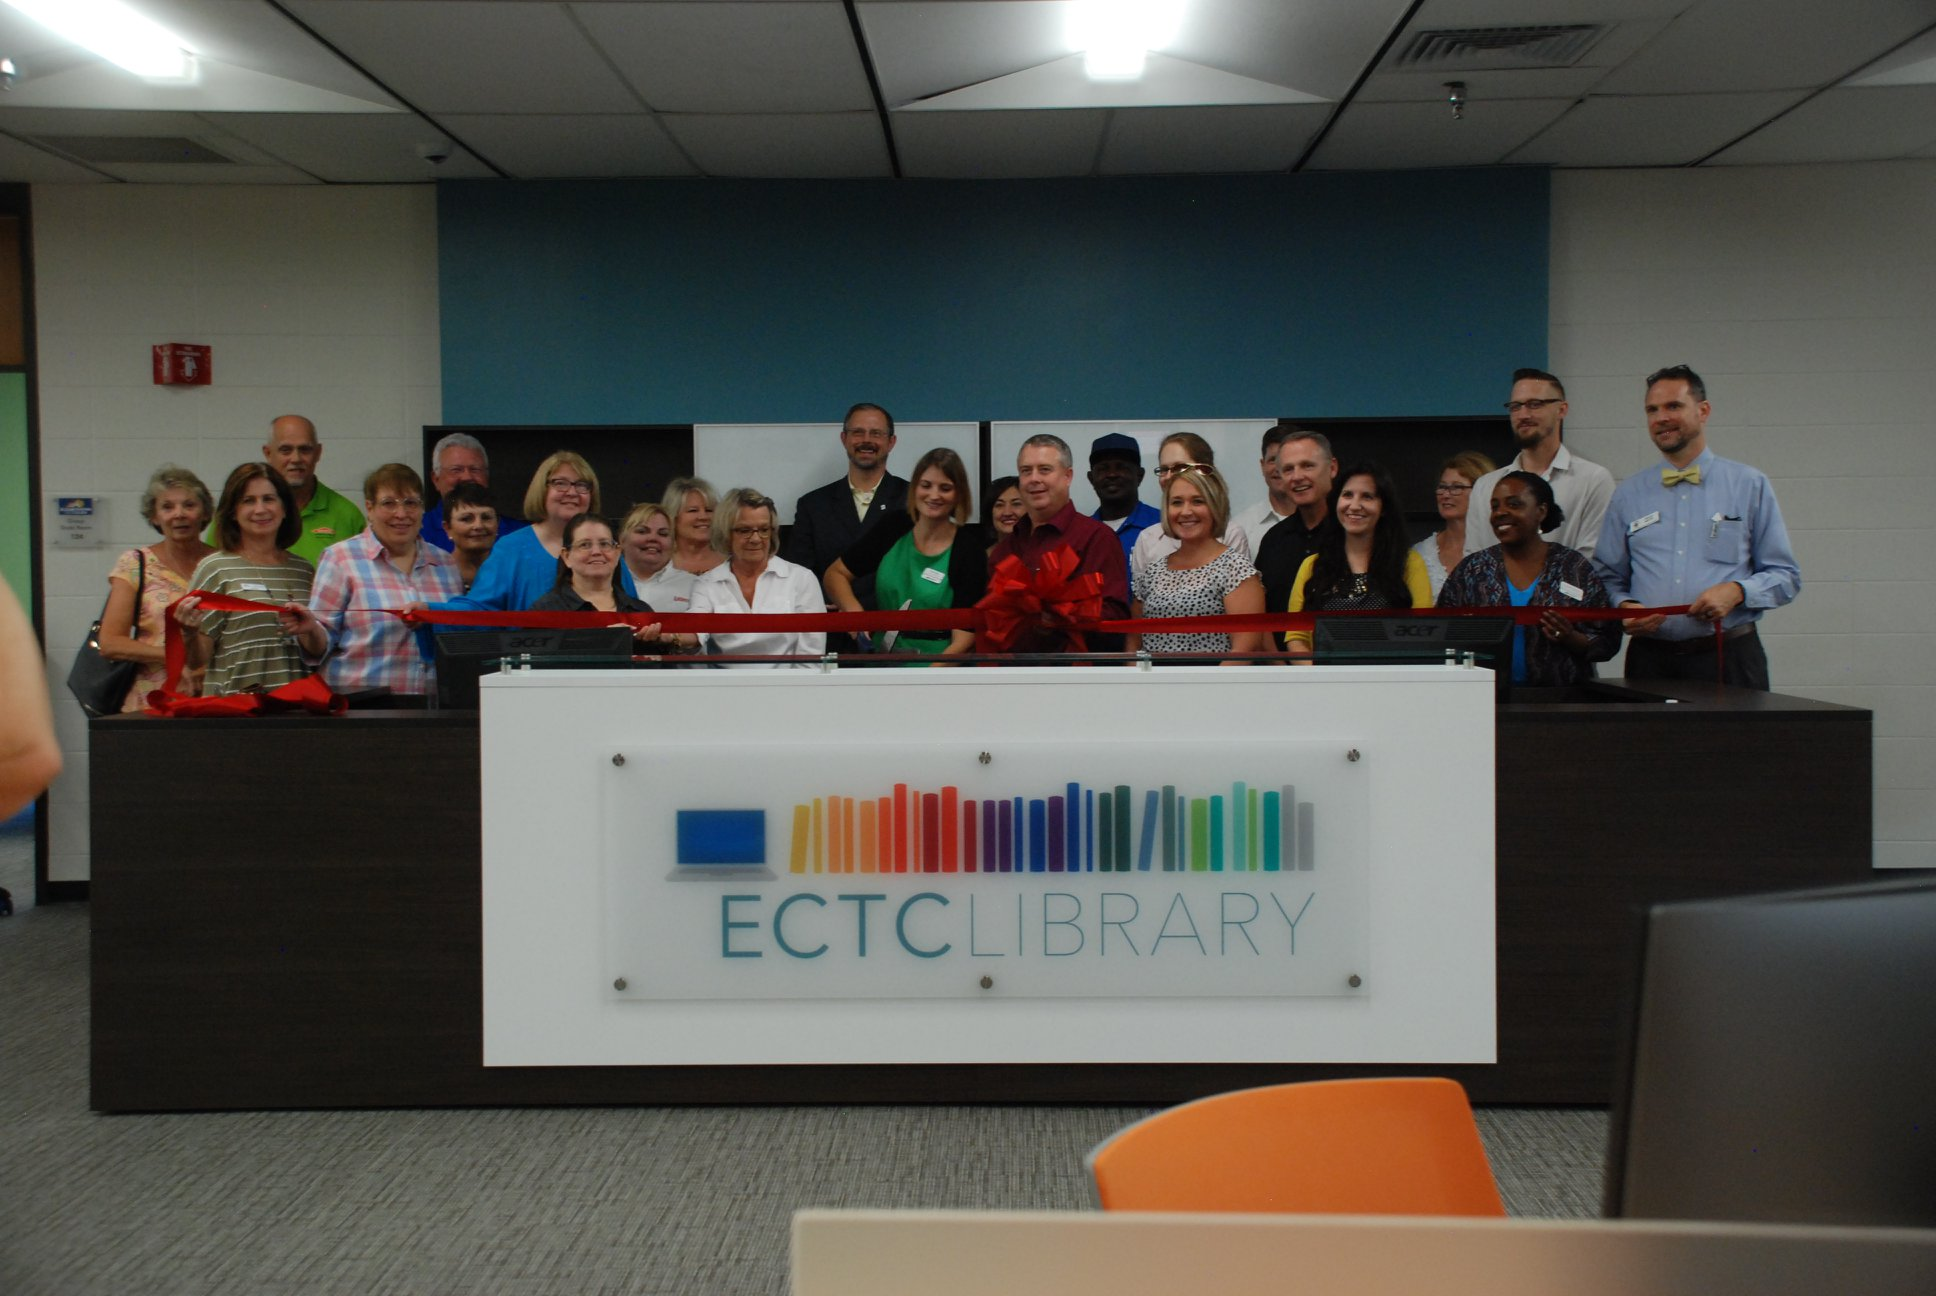 Assembled participants at the ECTC Library ribbon cutting